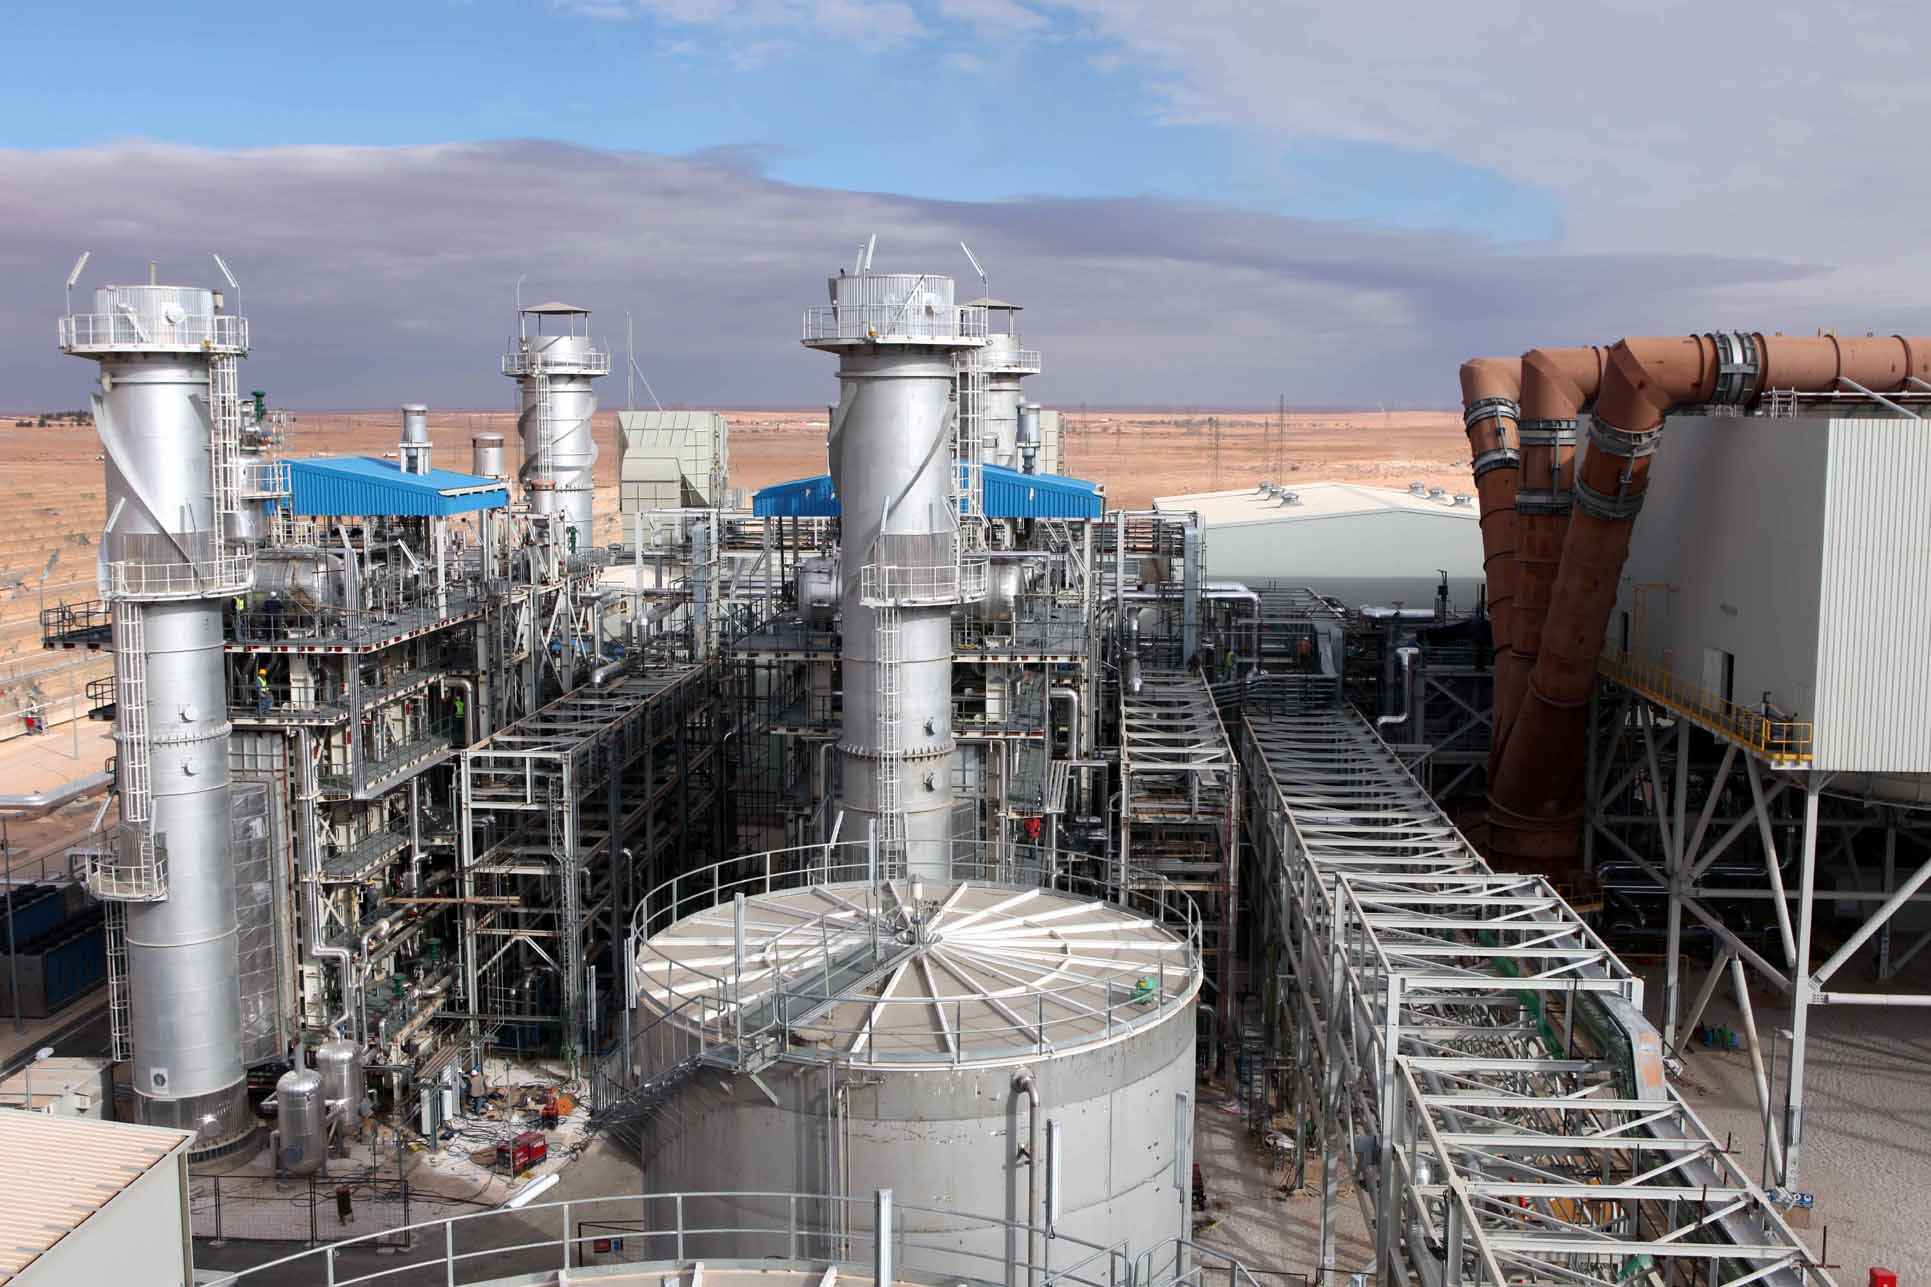 Hybrid_Power_Plant_in_Laghouat_Province,_Algeria